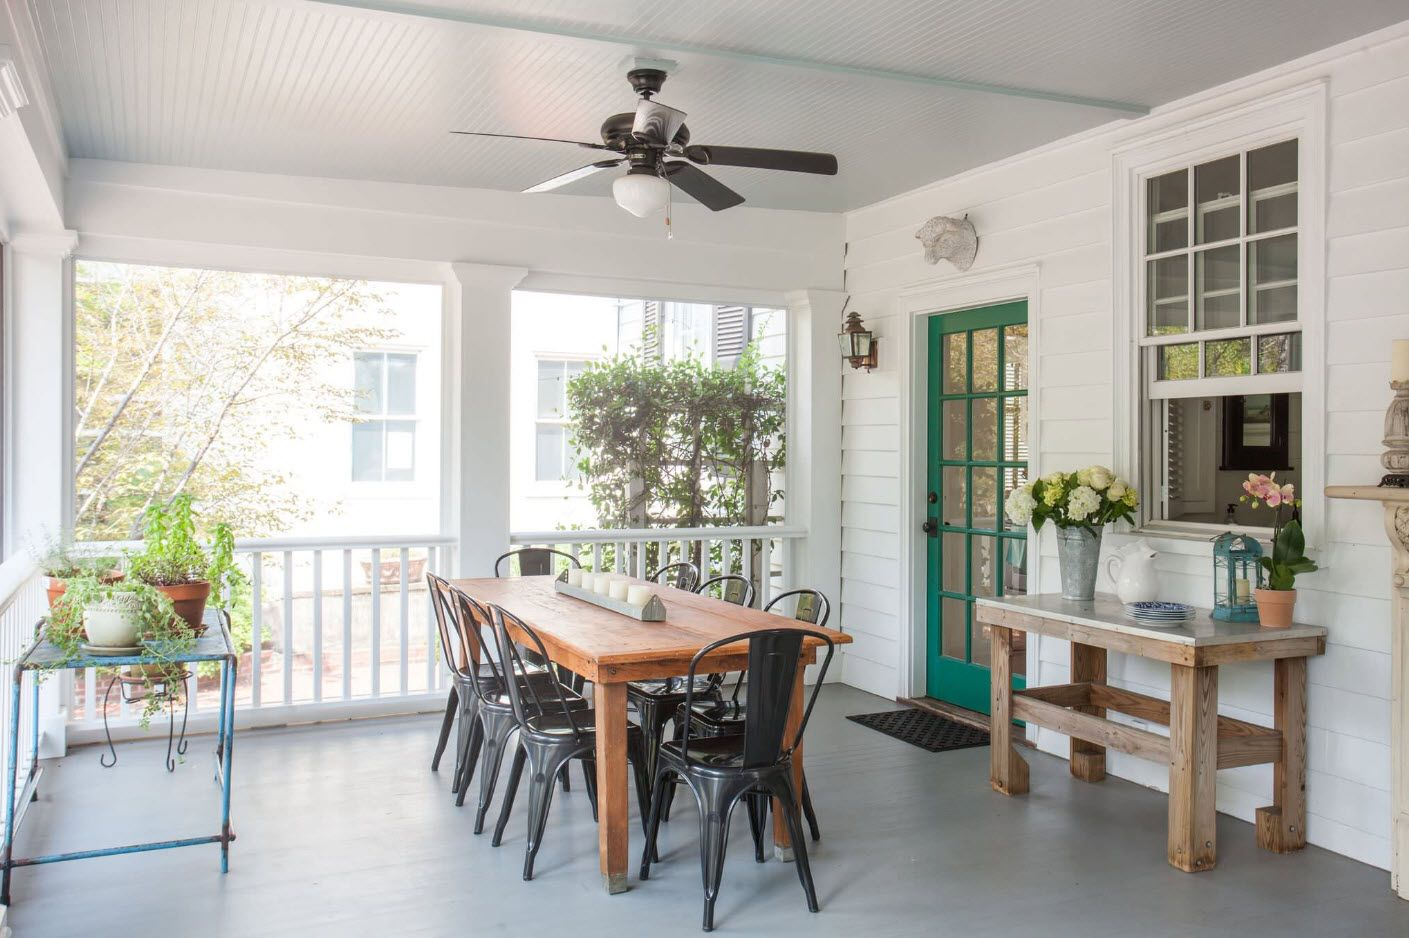 Casual open air space for having parties and meals outside with a fan